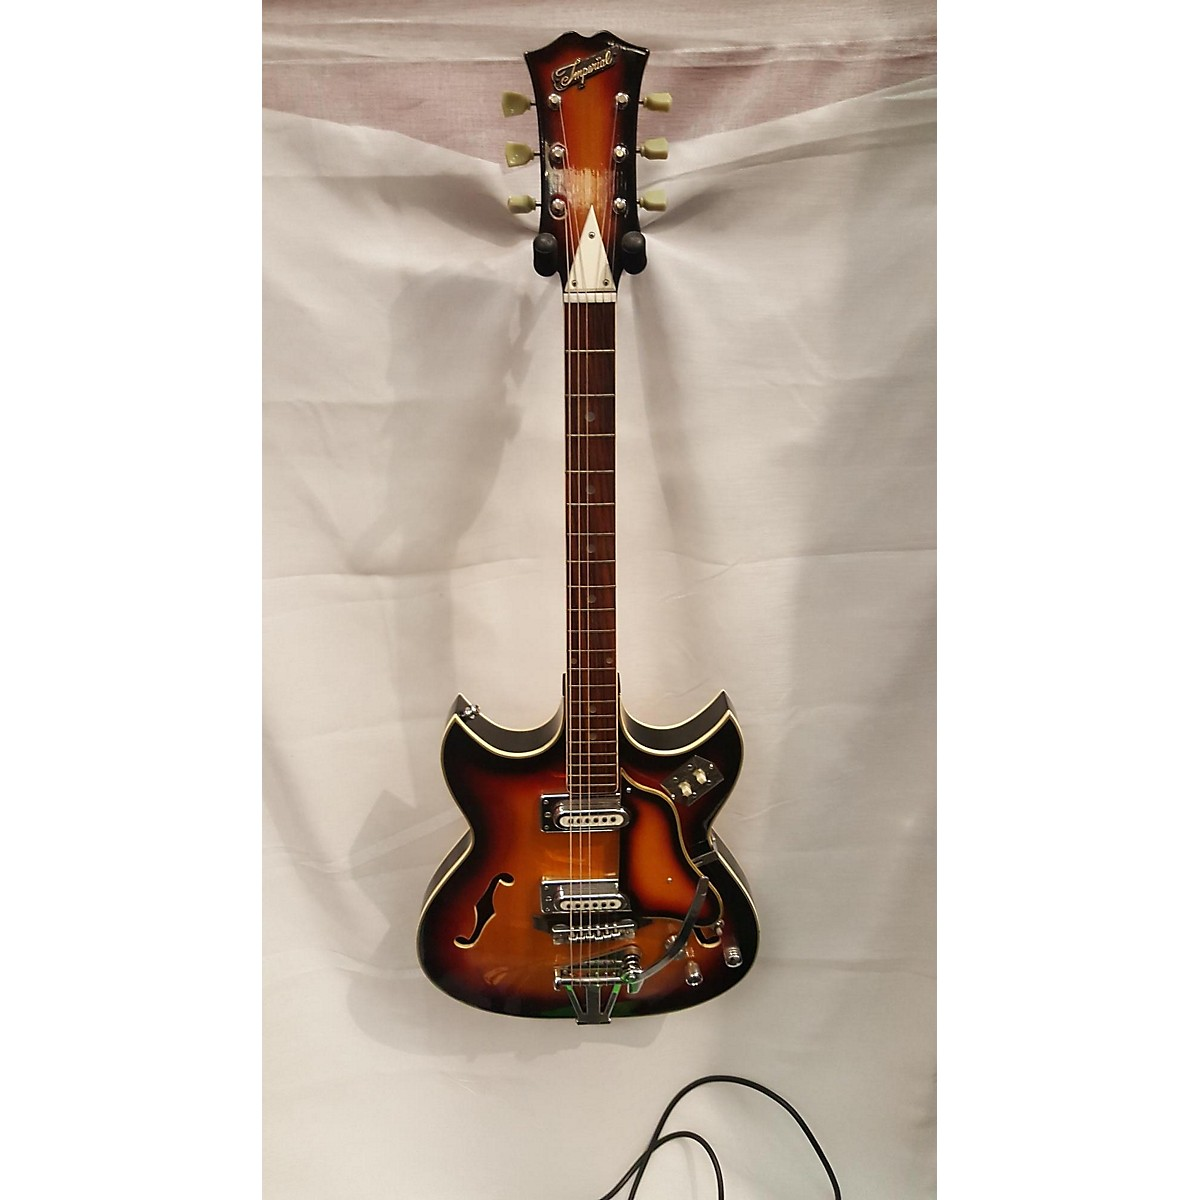 Teisco 1960s Imperial Hollow Body Electric Guitar